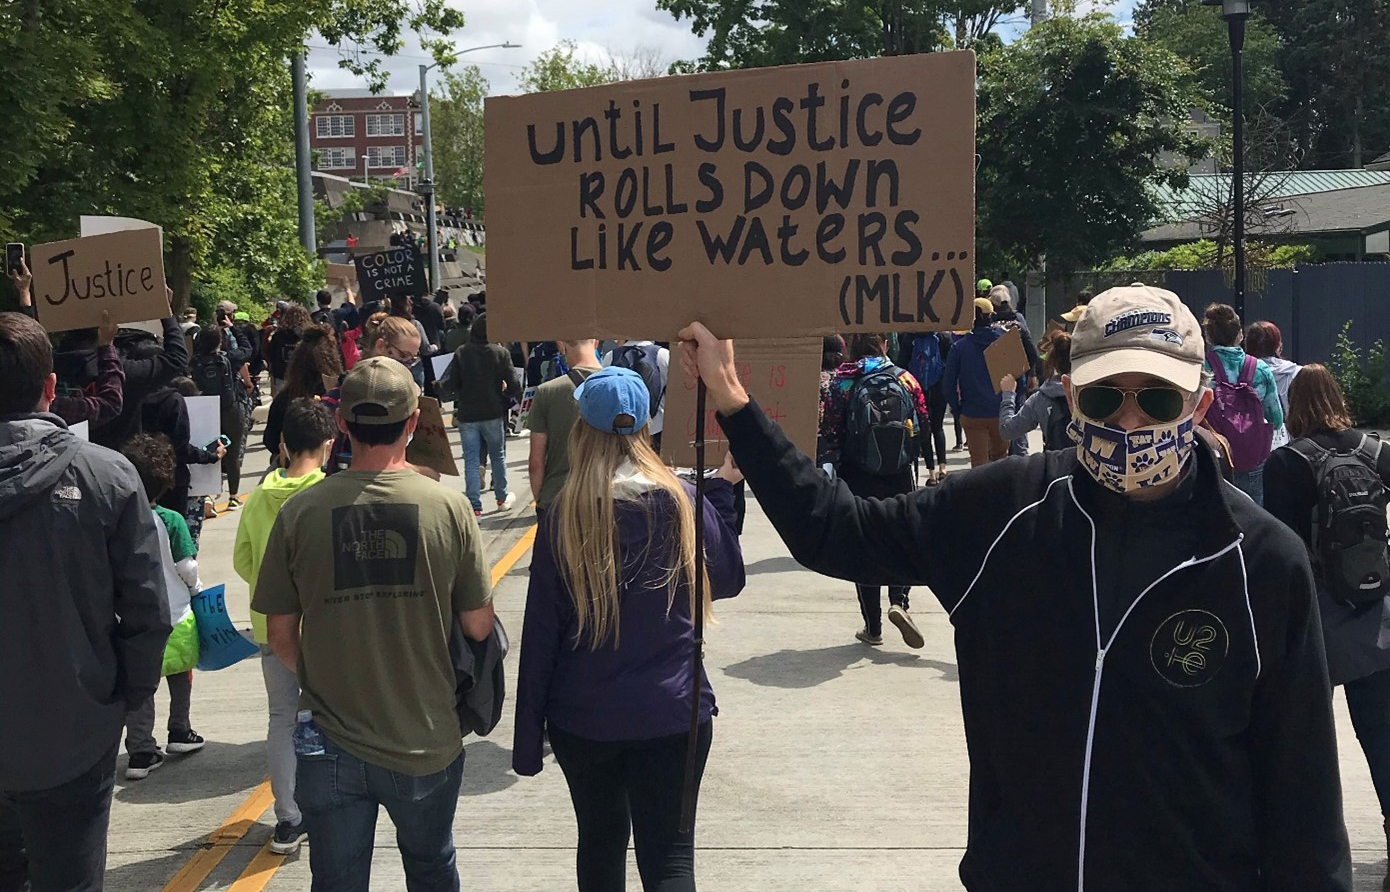 Man holding protest sign